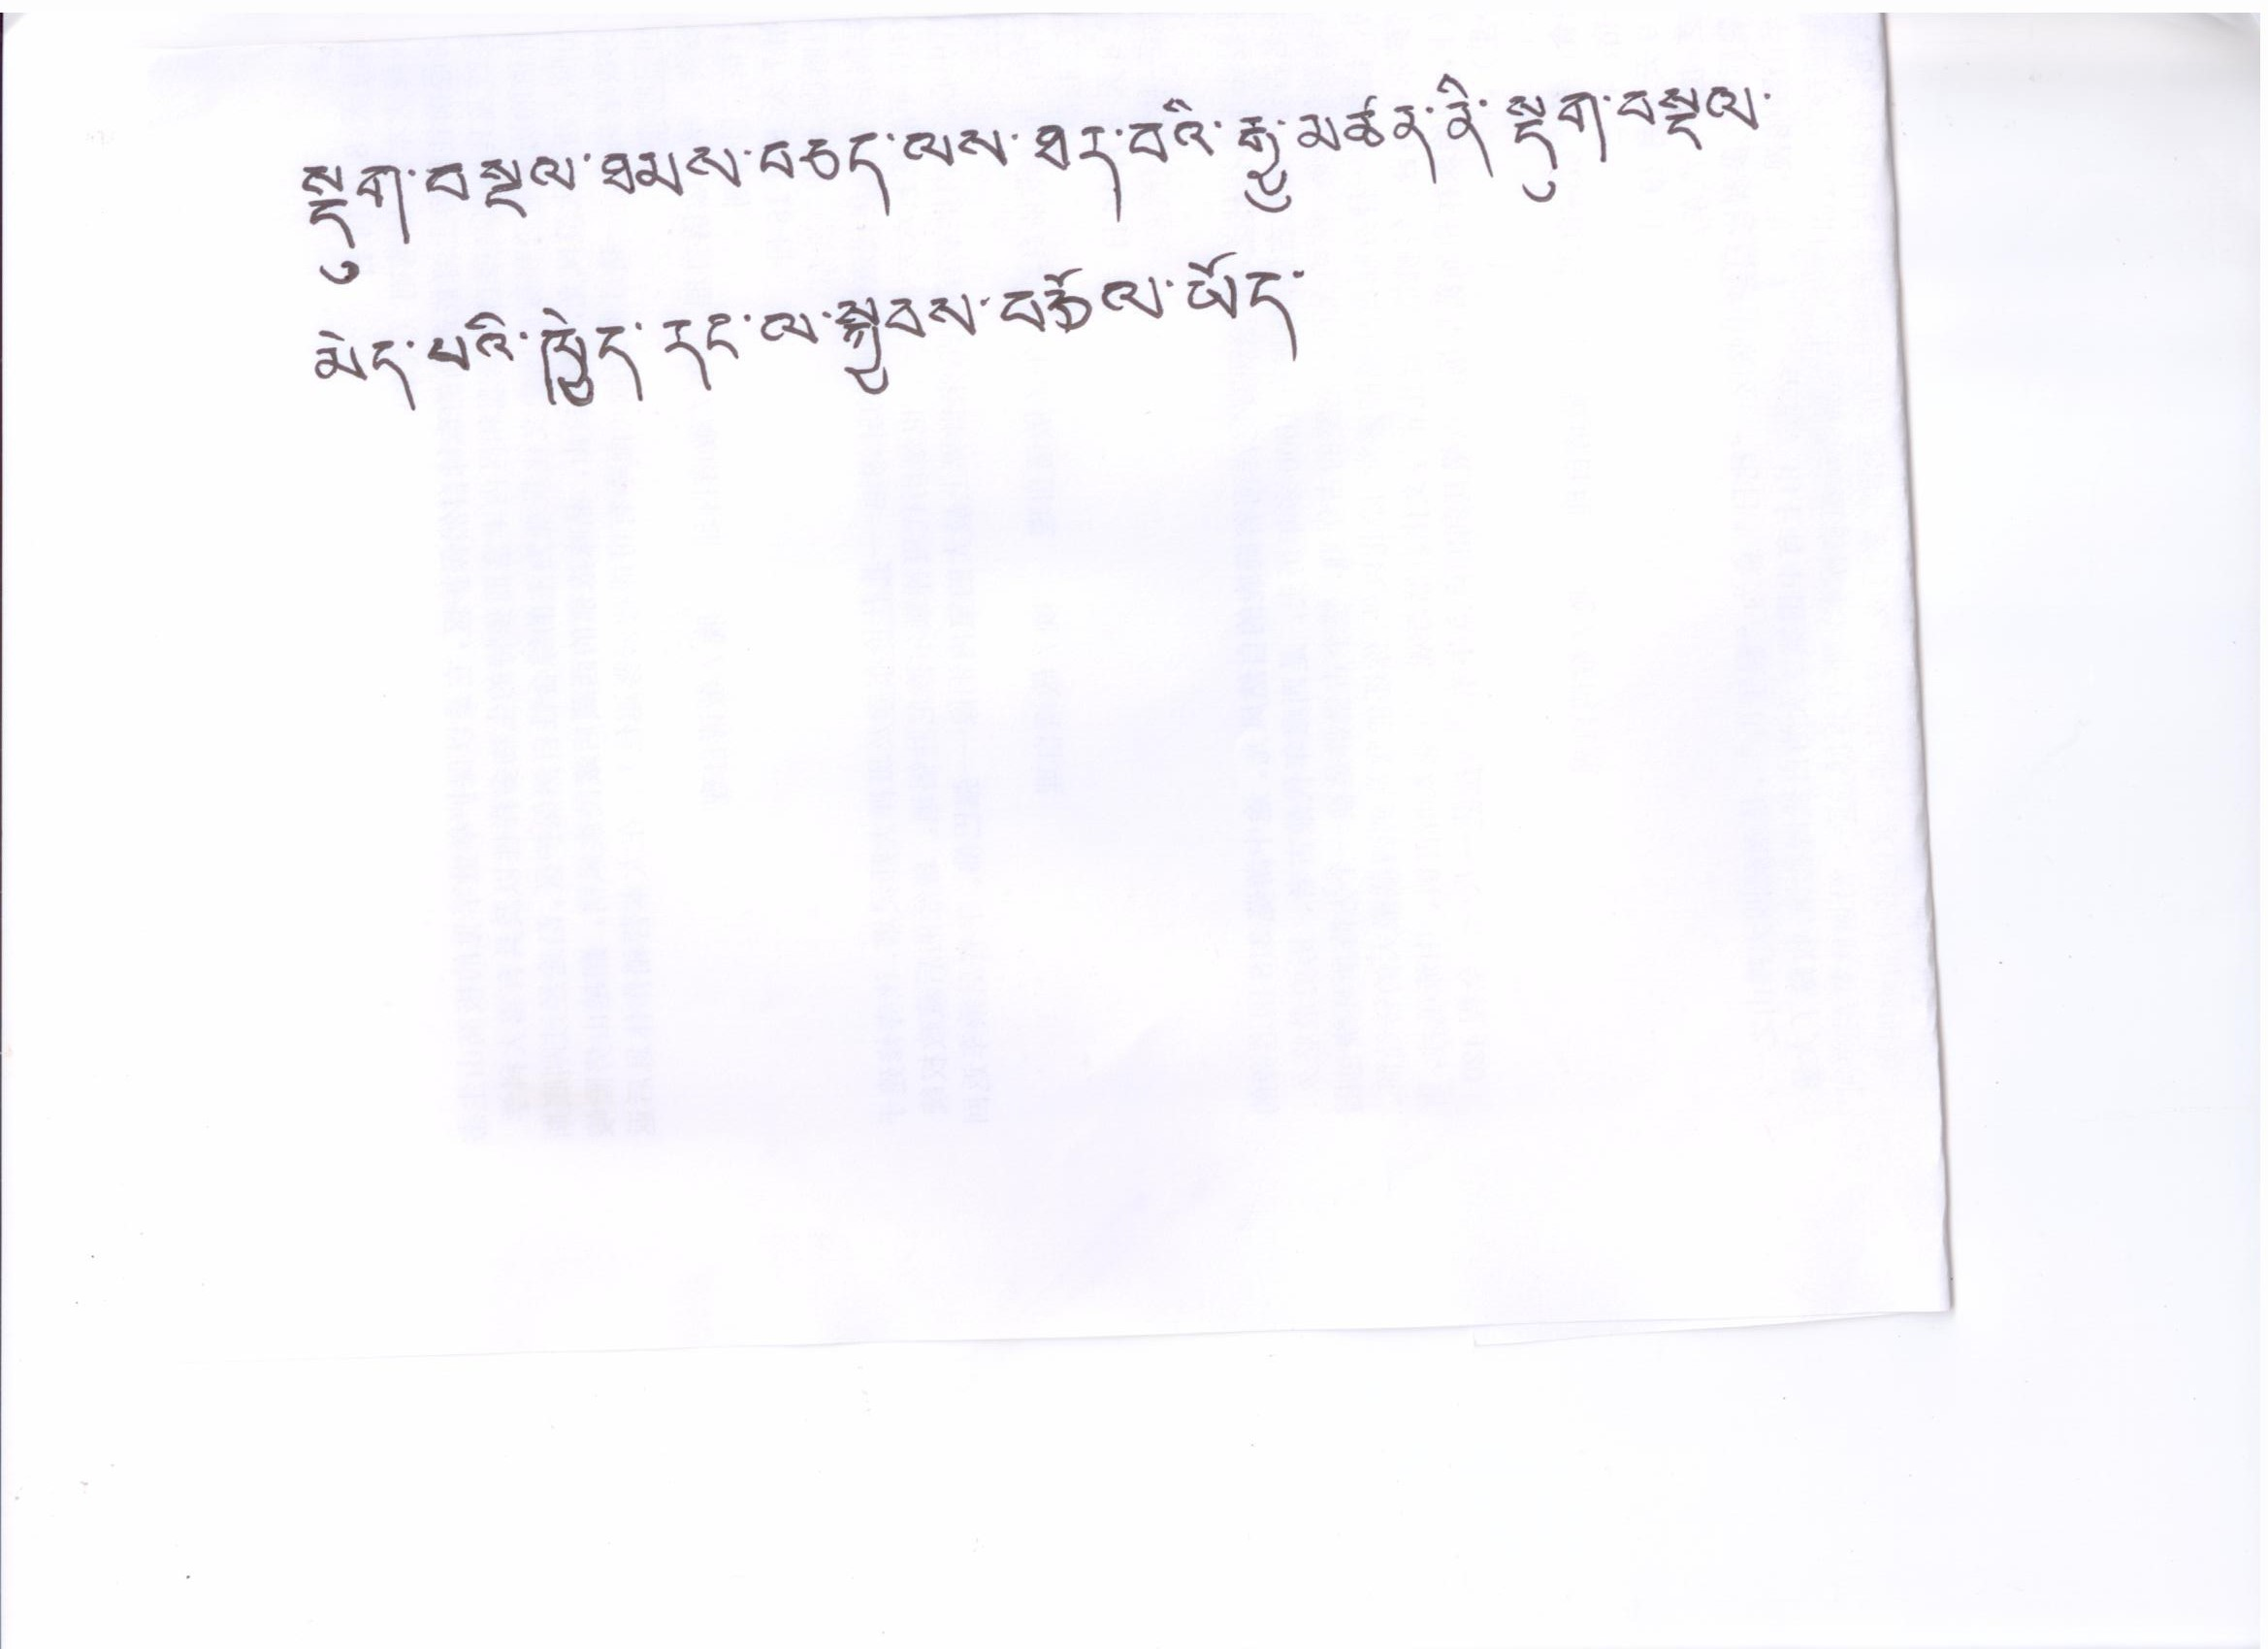 reviews, feedback for tibet tour, feedbacks, translation, tibetan handwriting